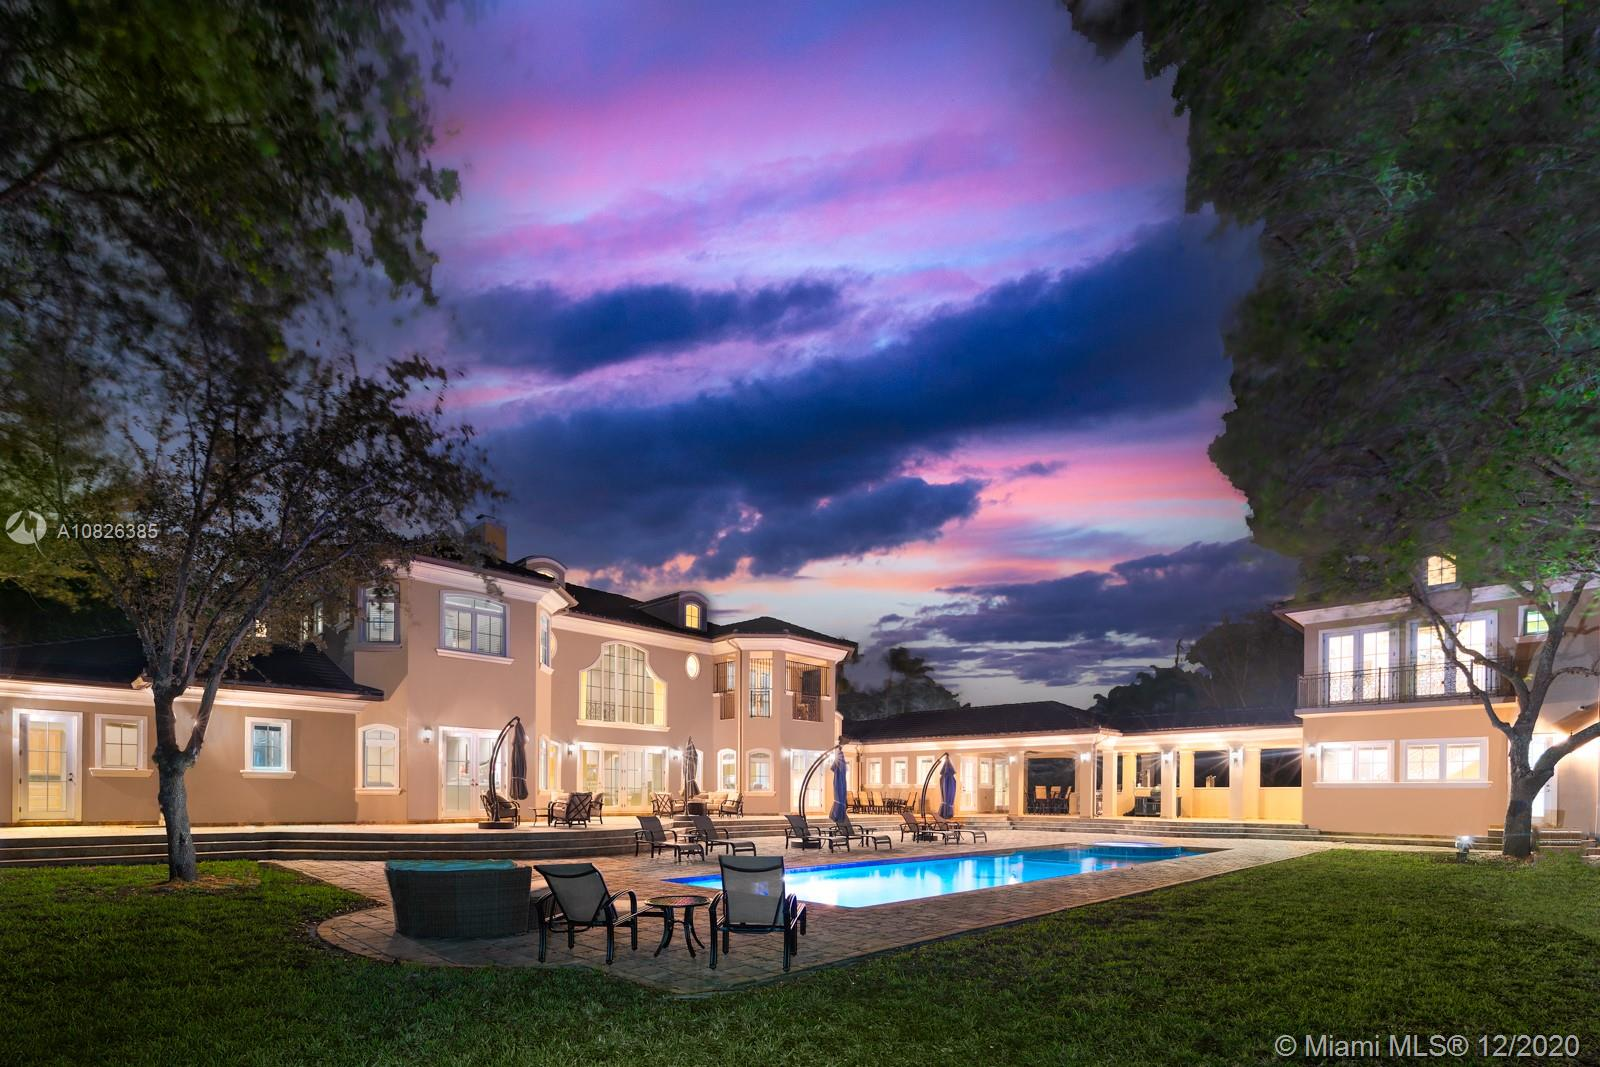 Spectacular 1-acre estate in coveted North Pinecrest featuring 8BR/8.5BA and 9,997 Adj. Sq. Ft. (11,414 total Sq. Ft.). Spacious formal and informal living areas w/ soaring volume ceilings and CGI impact windows/doors. Gourmet eat-in kitchen w/ Viking Professional appliances. Home theater, elevator and gas fireplace. 55' heated pool w/ expansive patio, summer kitchen and loggia to two-story guest house. Walled and gated w/ 3-car garage and whole house generator. Pinecrest Elementary School District.